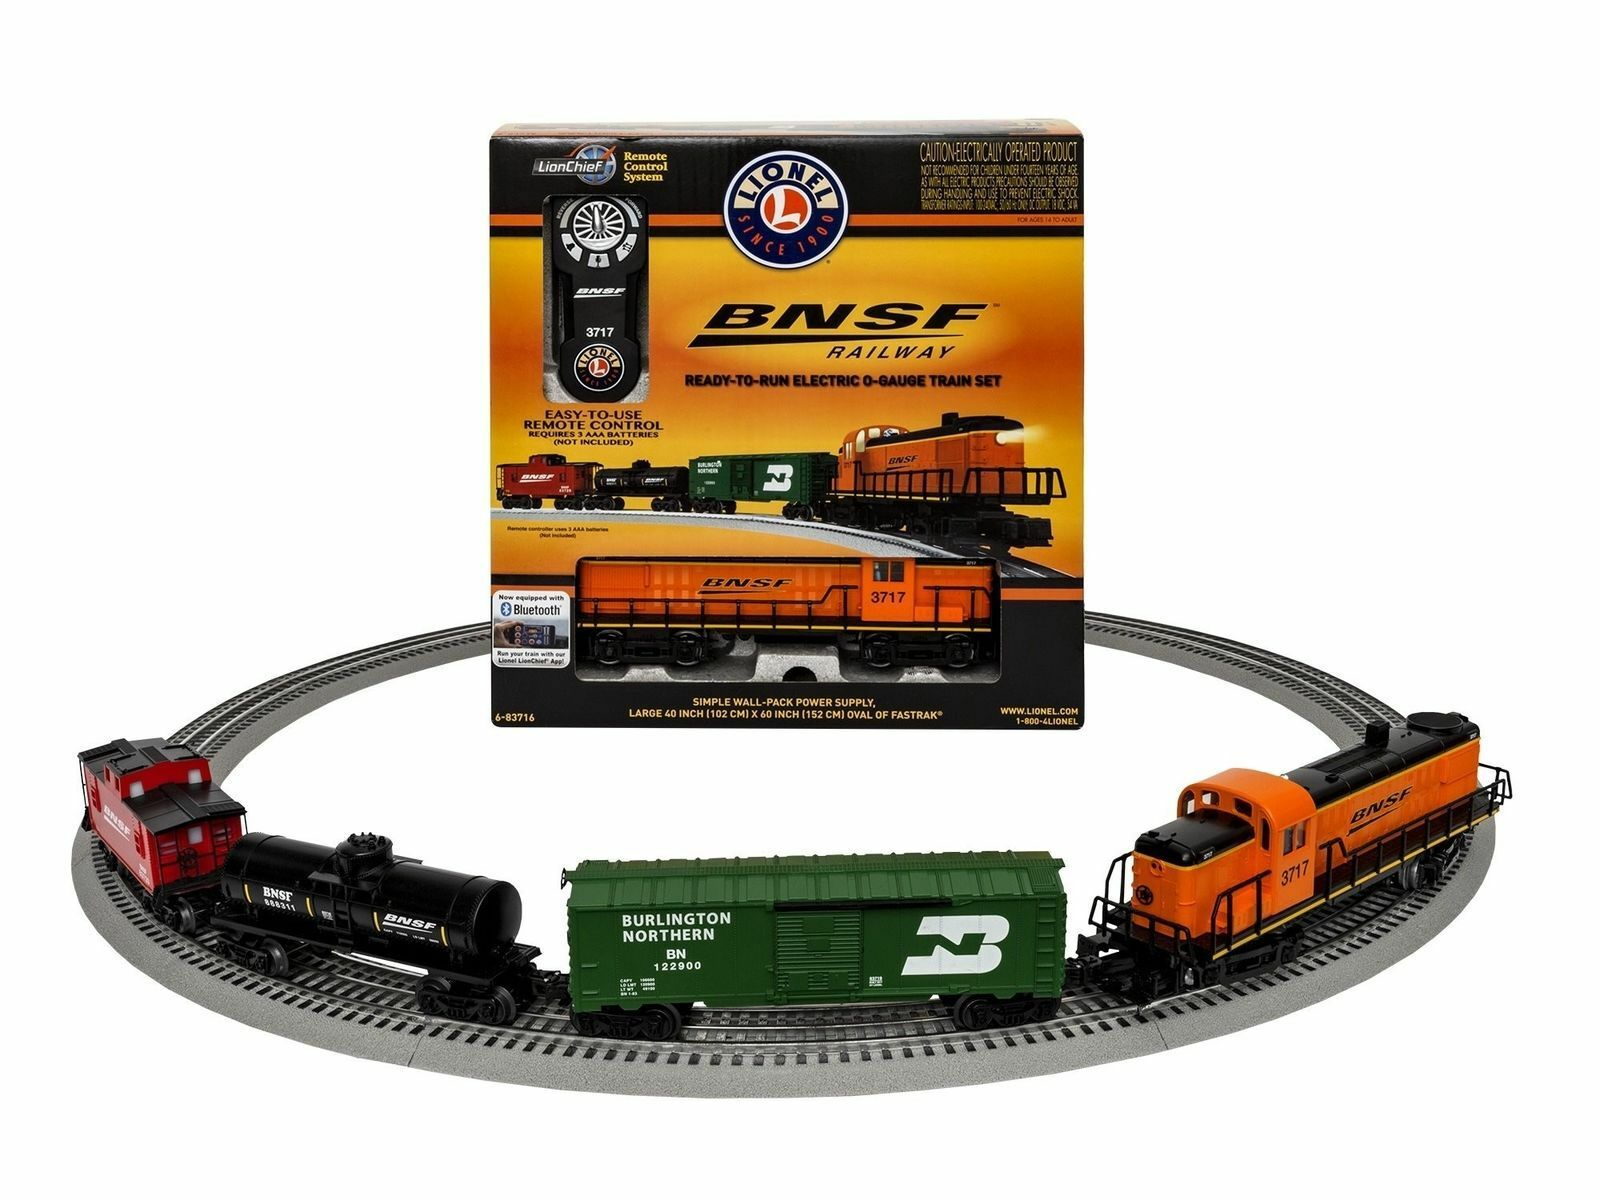 Lionel 83716 BNSF RS-3 Freight Set with bluee Tooth Train Set New GREAT PRICE